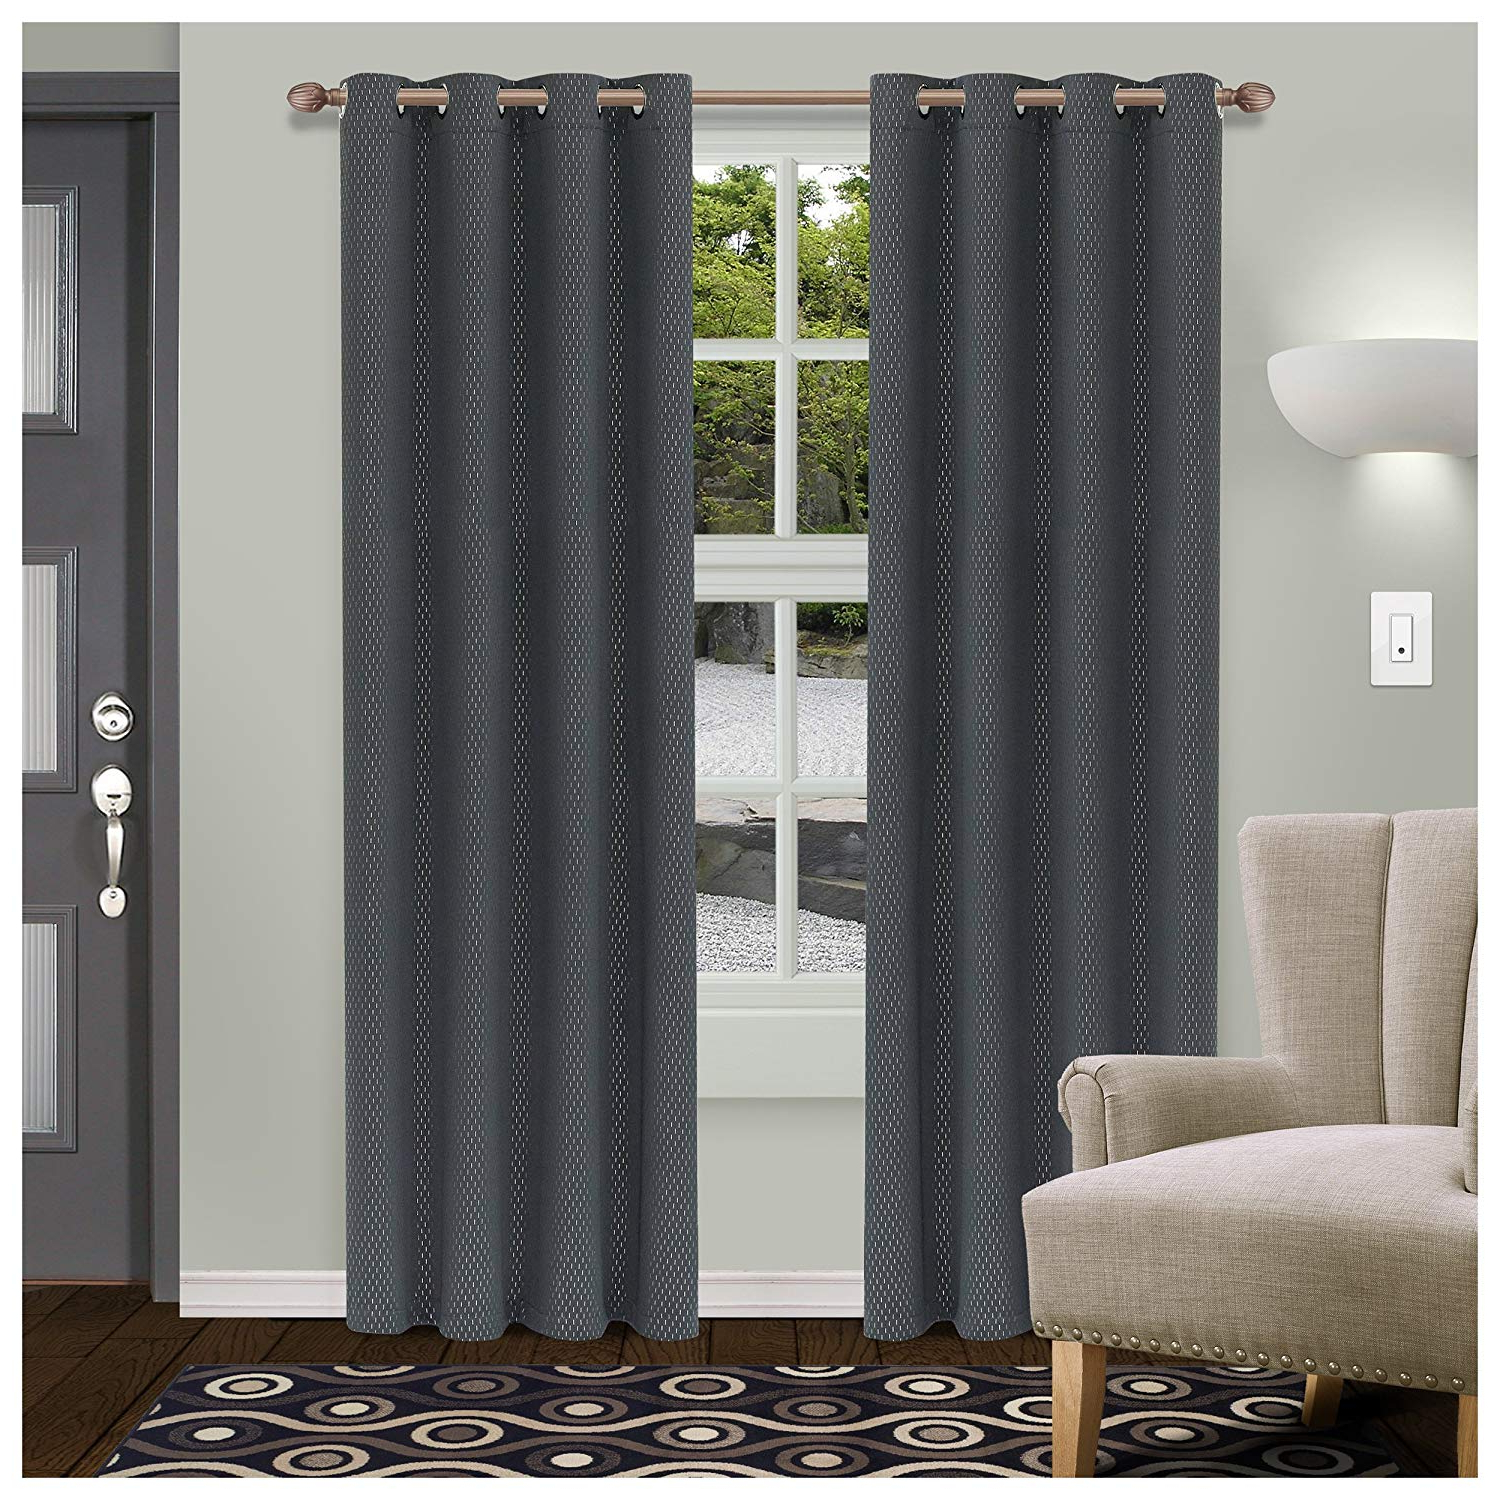 Superior Shimmer Blackout Curtain Set Of 2, Thermal Insulated Panel Pair  With Grommet Top Header, Chic Metallic Embellished Room Darkening Drapes, With Popular Superior Leaves Insulated Thermal Blackout Grommet Curtain Panel Pairs (View 18 of 20)